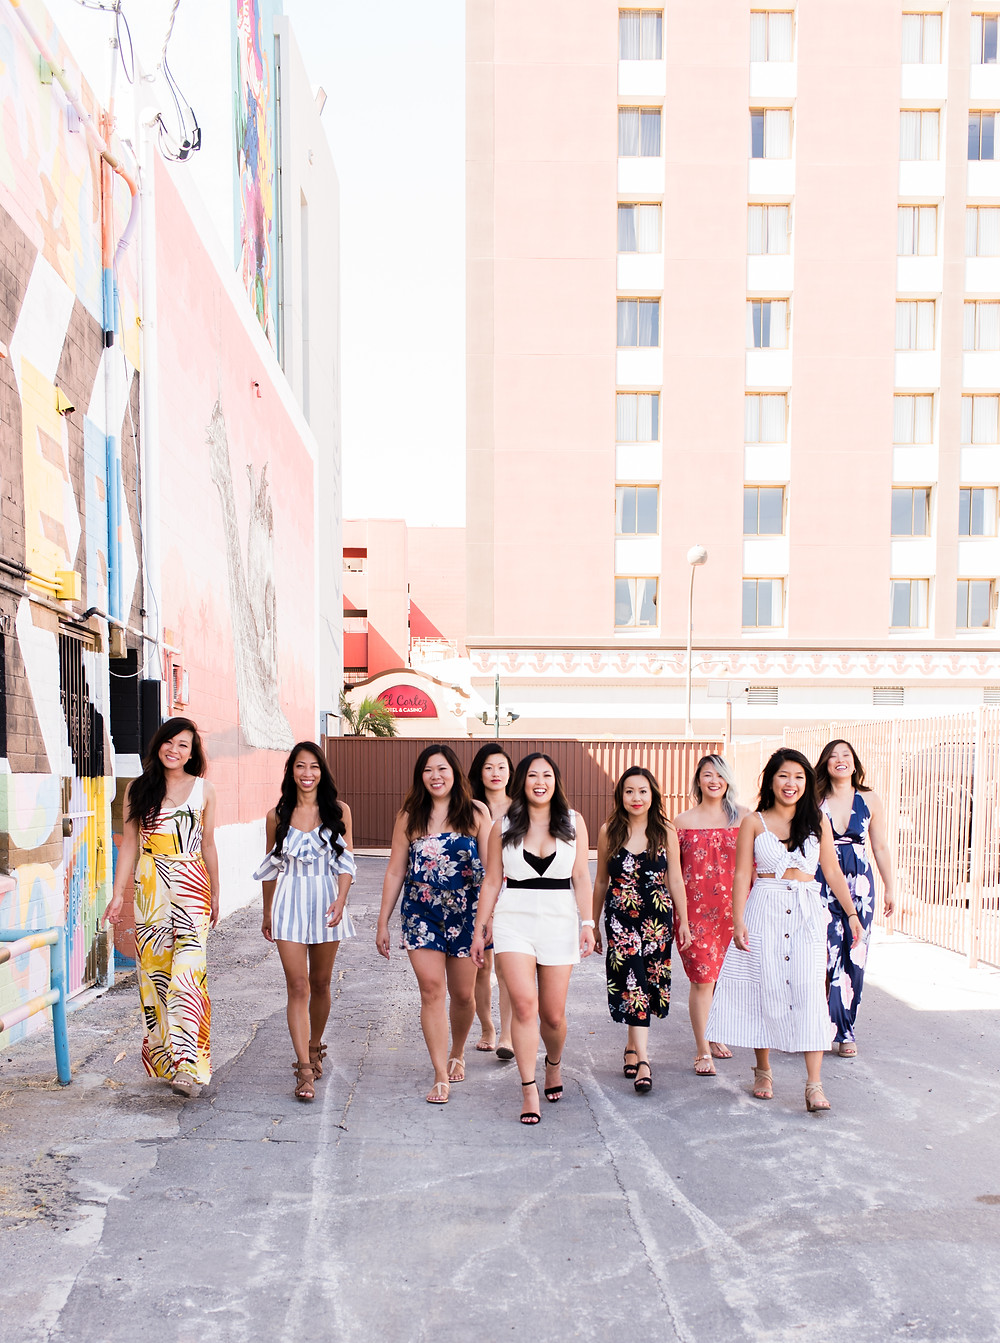 Las Vegas Bachelorette party, downtown las vegas, art mural photo tour, las vegas photographers, las vegas wedding photographers